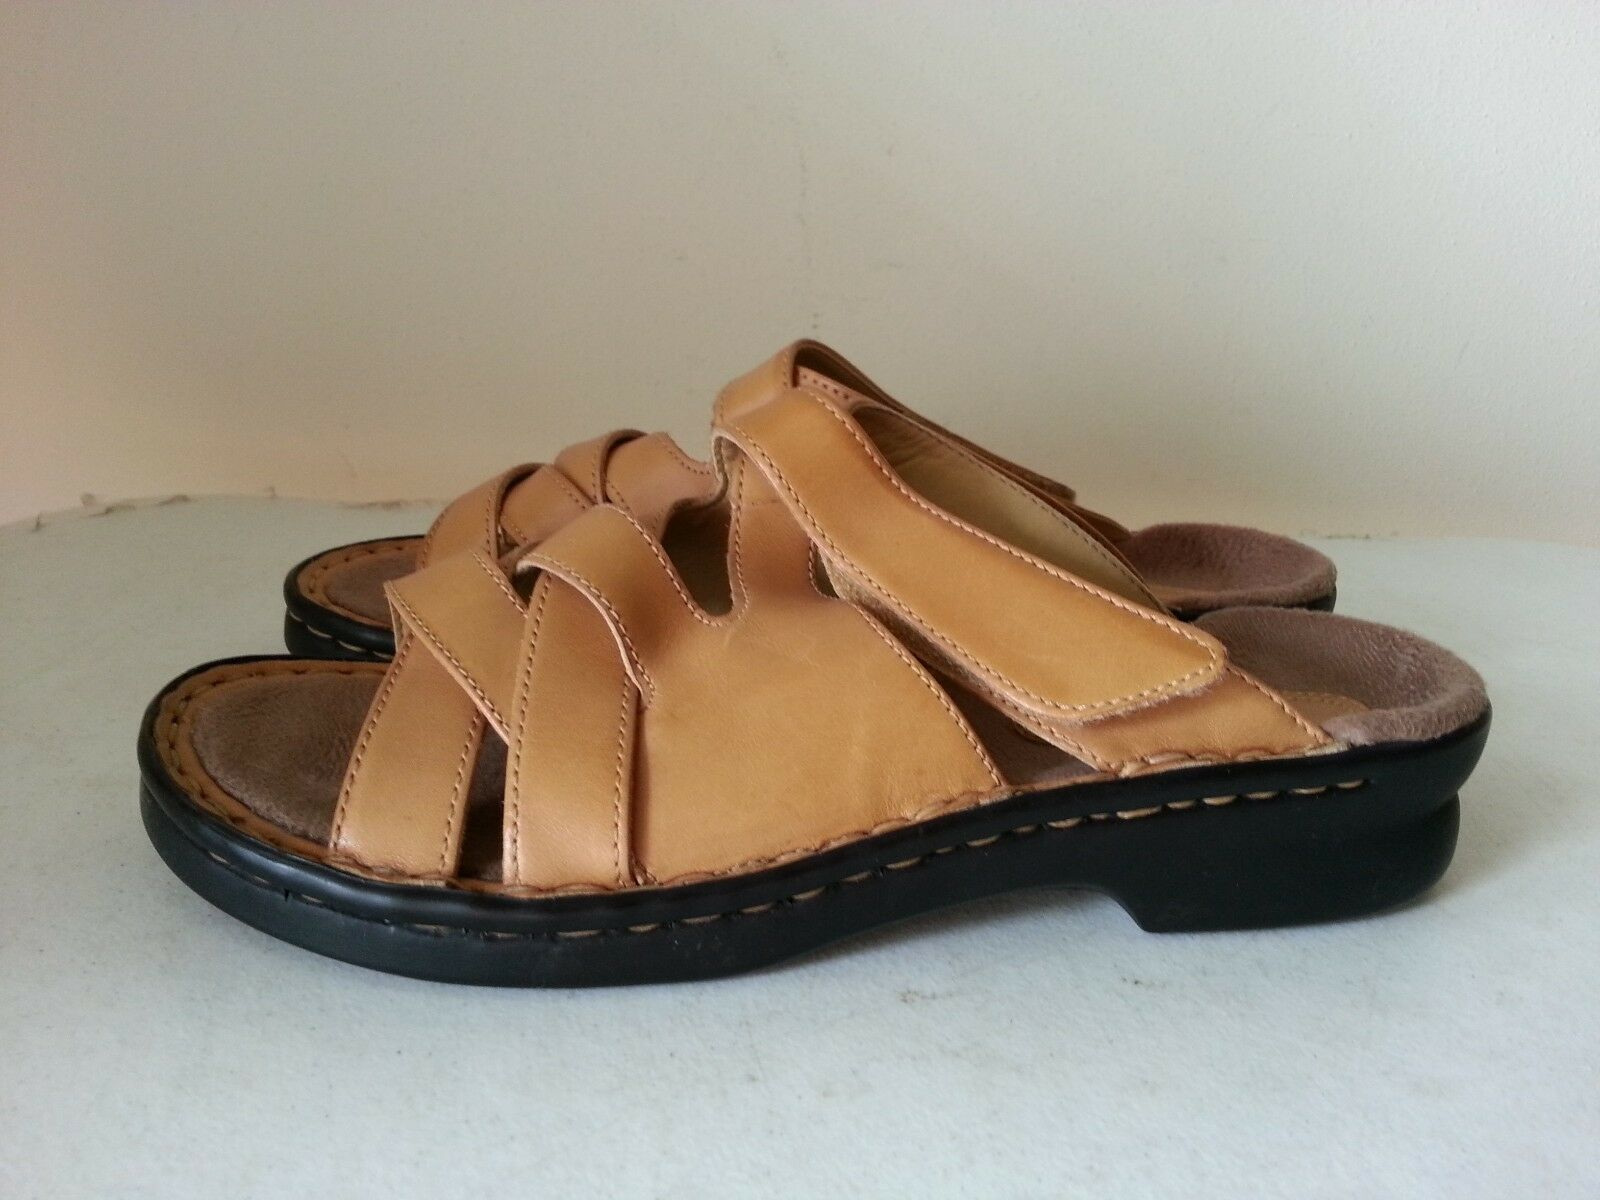 Clarks womens camel colored sandals - womens Clarks 7 M 6dc7dd